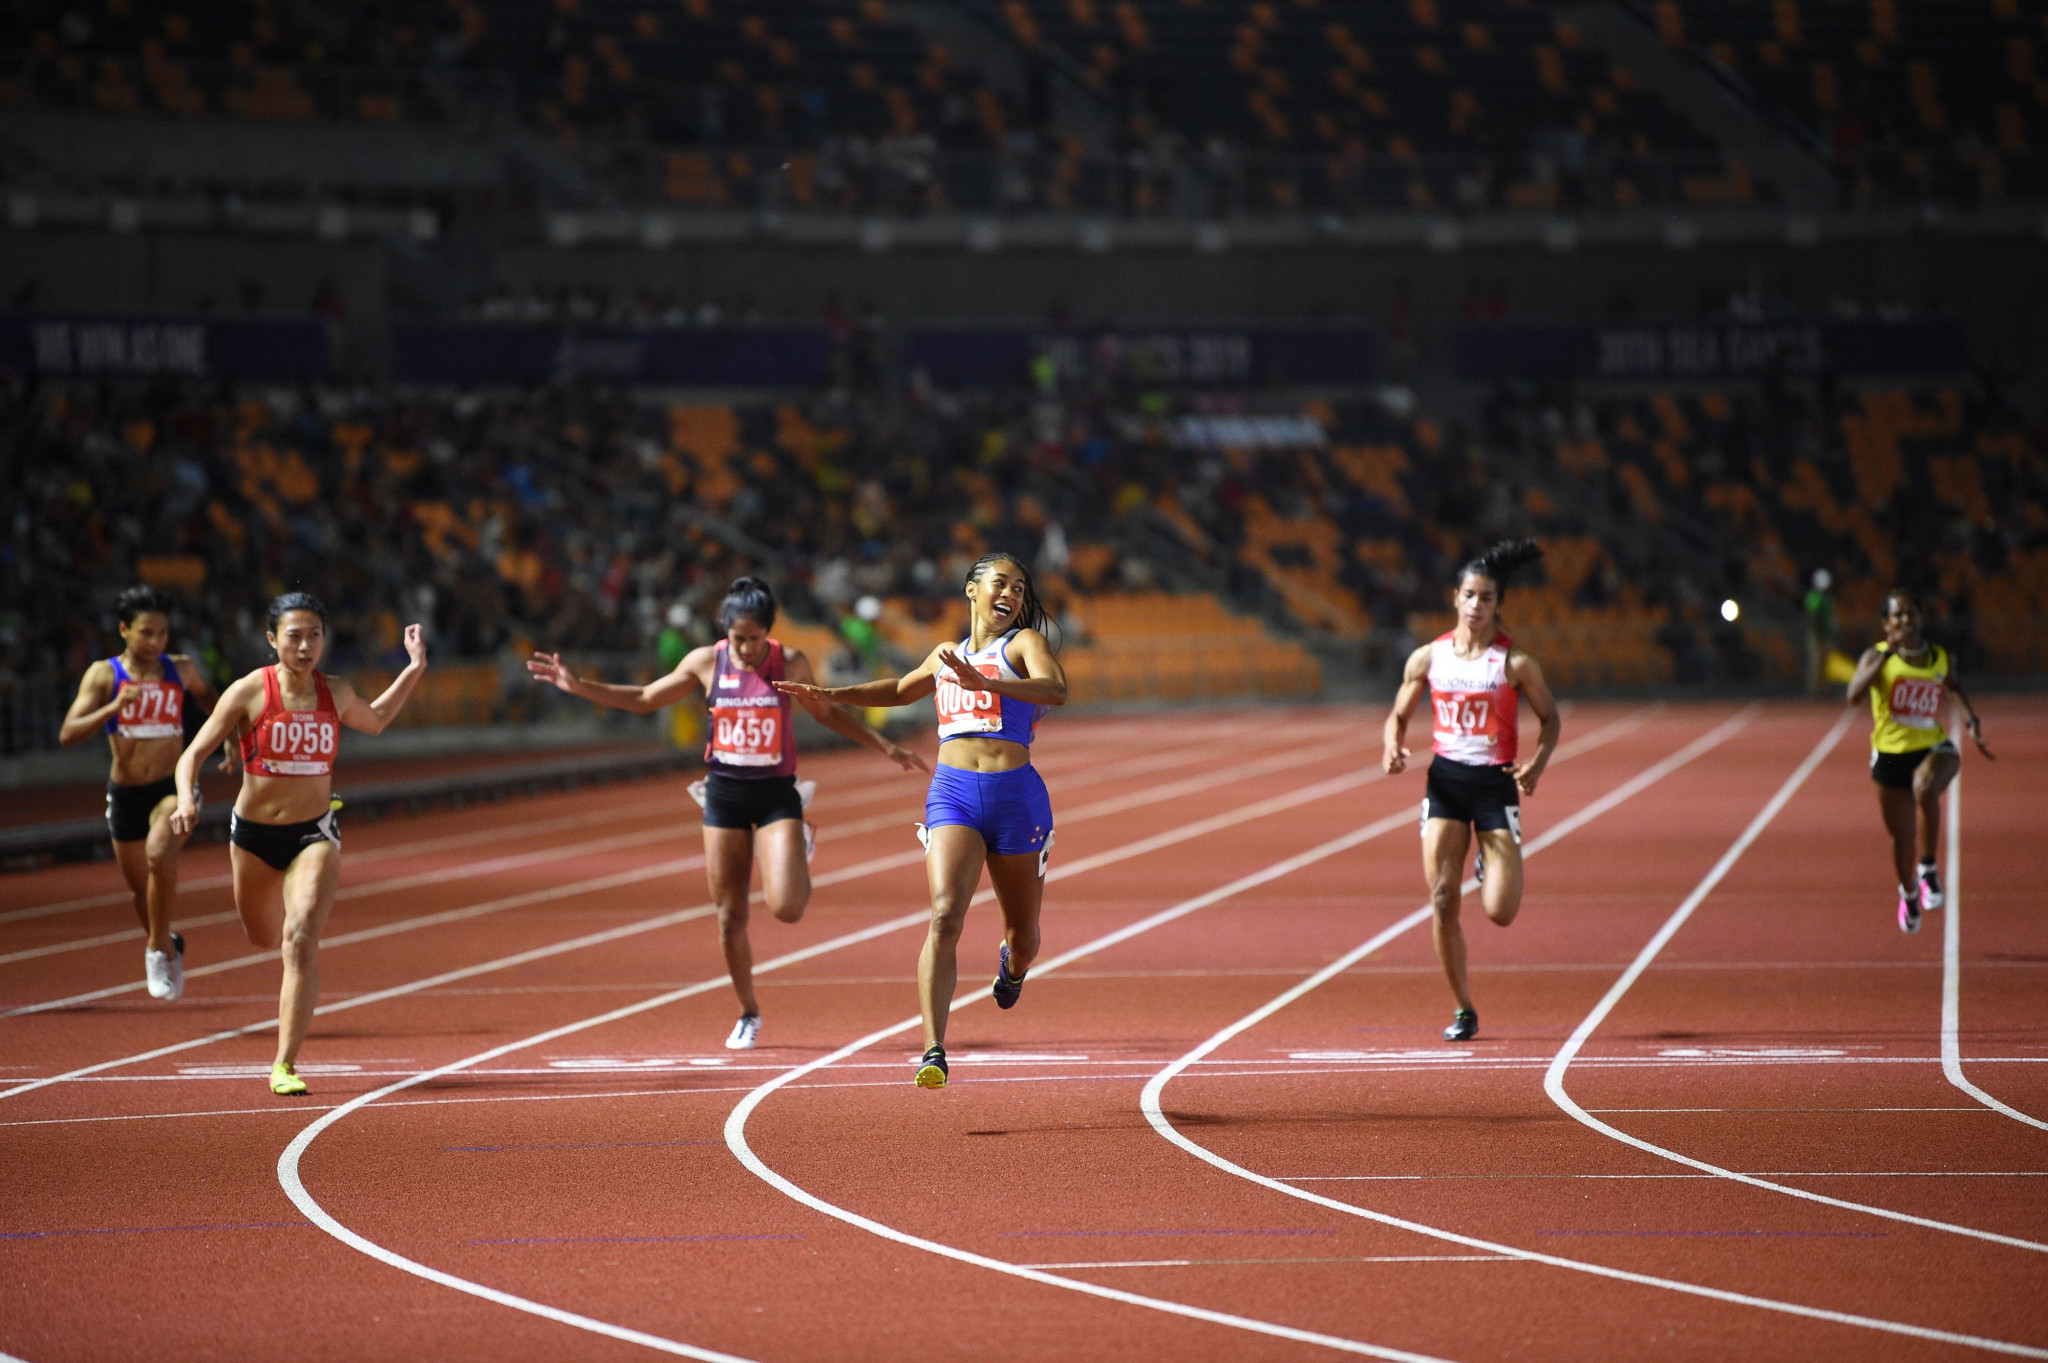 Hosts Philippines move to 89 gold medals at Southeast Asian Games